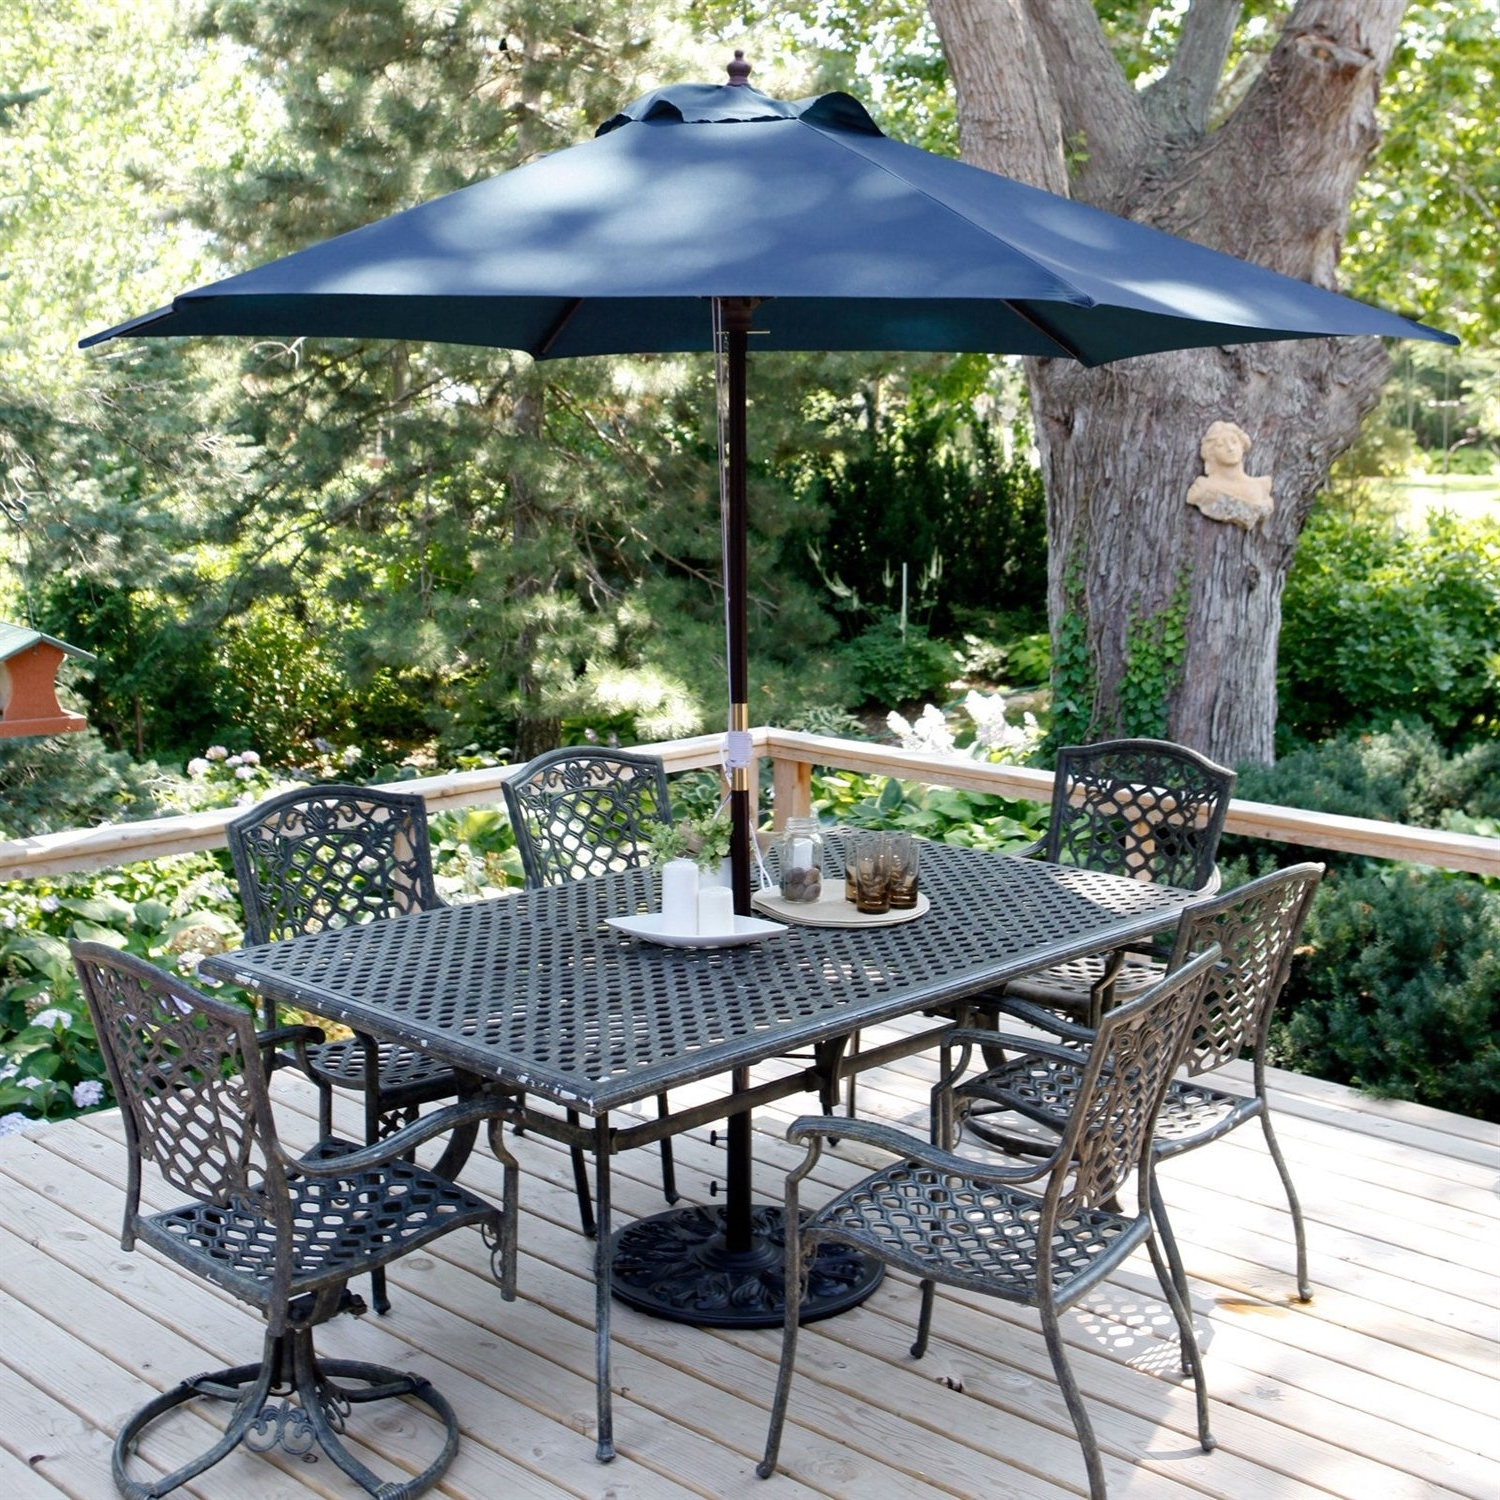 Blue Patio Umbrellas Throughout Widely Used Navy Blue 11 Ft Patio Umbrella With Antique Bronze Pole And Base (Gallery 15 of 20)